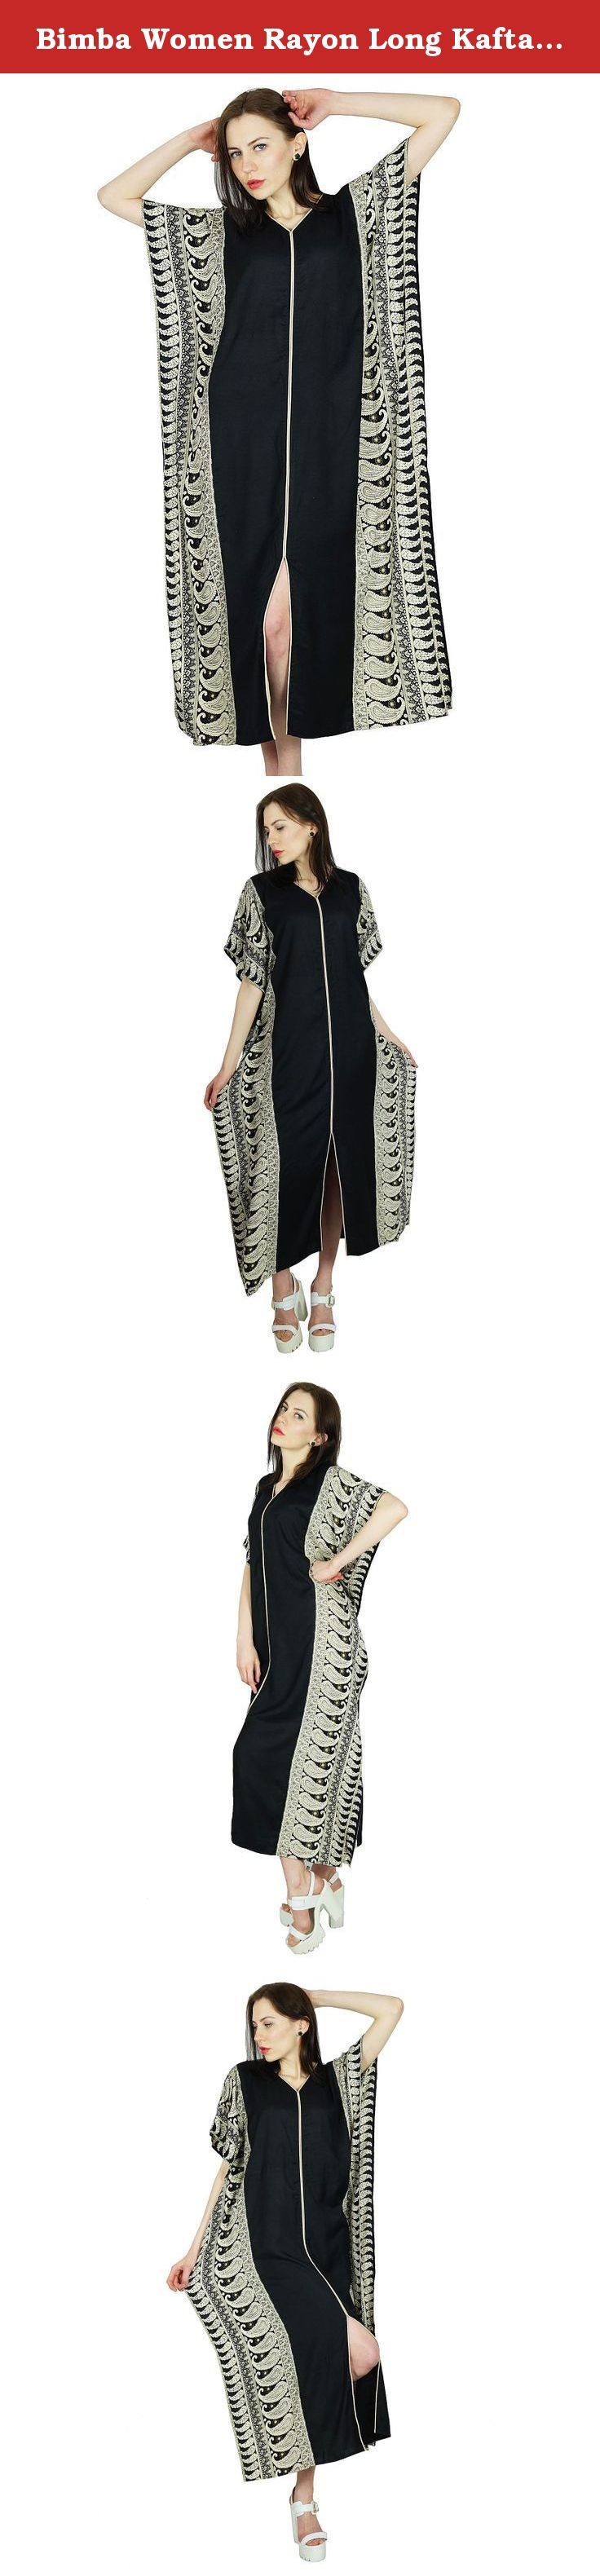 Bimba Women Rayon Long Kaftan Black Caftan Maxi Gown Coverup Top. Bimba's latest collection showcases a plethora of amazingly designed kaftans in full length for casual occasion. Black in color with a stylish front slit the kaftan has a solid pattern with eye catching geometric prints on both the sides. The adorable kimono sleeves adds to the appeal of the kaftan. The key feature of the kaftan is its fabric-Rayon. Comfortable, light in weight and soft, a Rayon kaftan can be adorned easily...